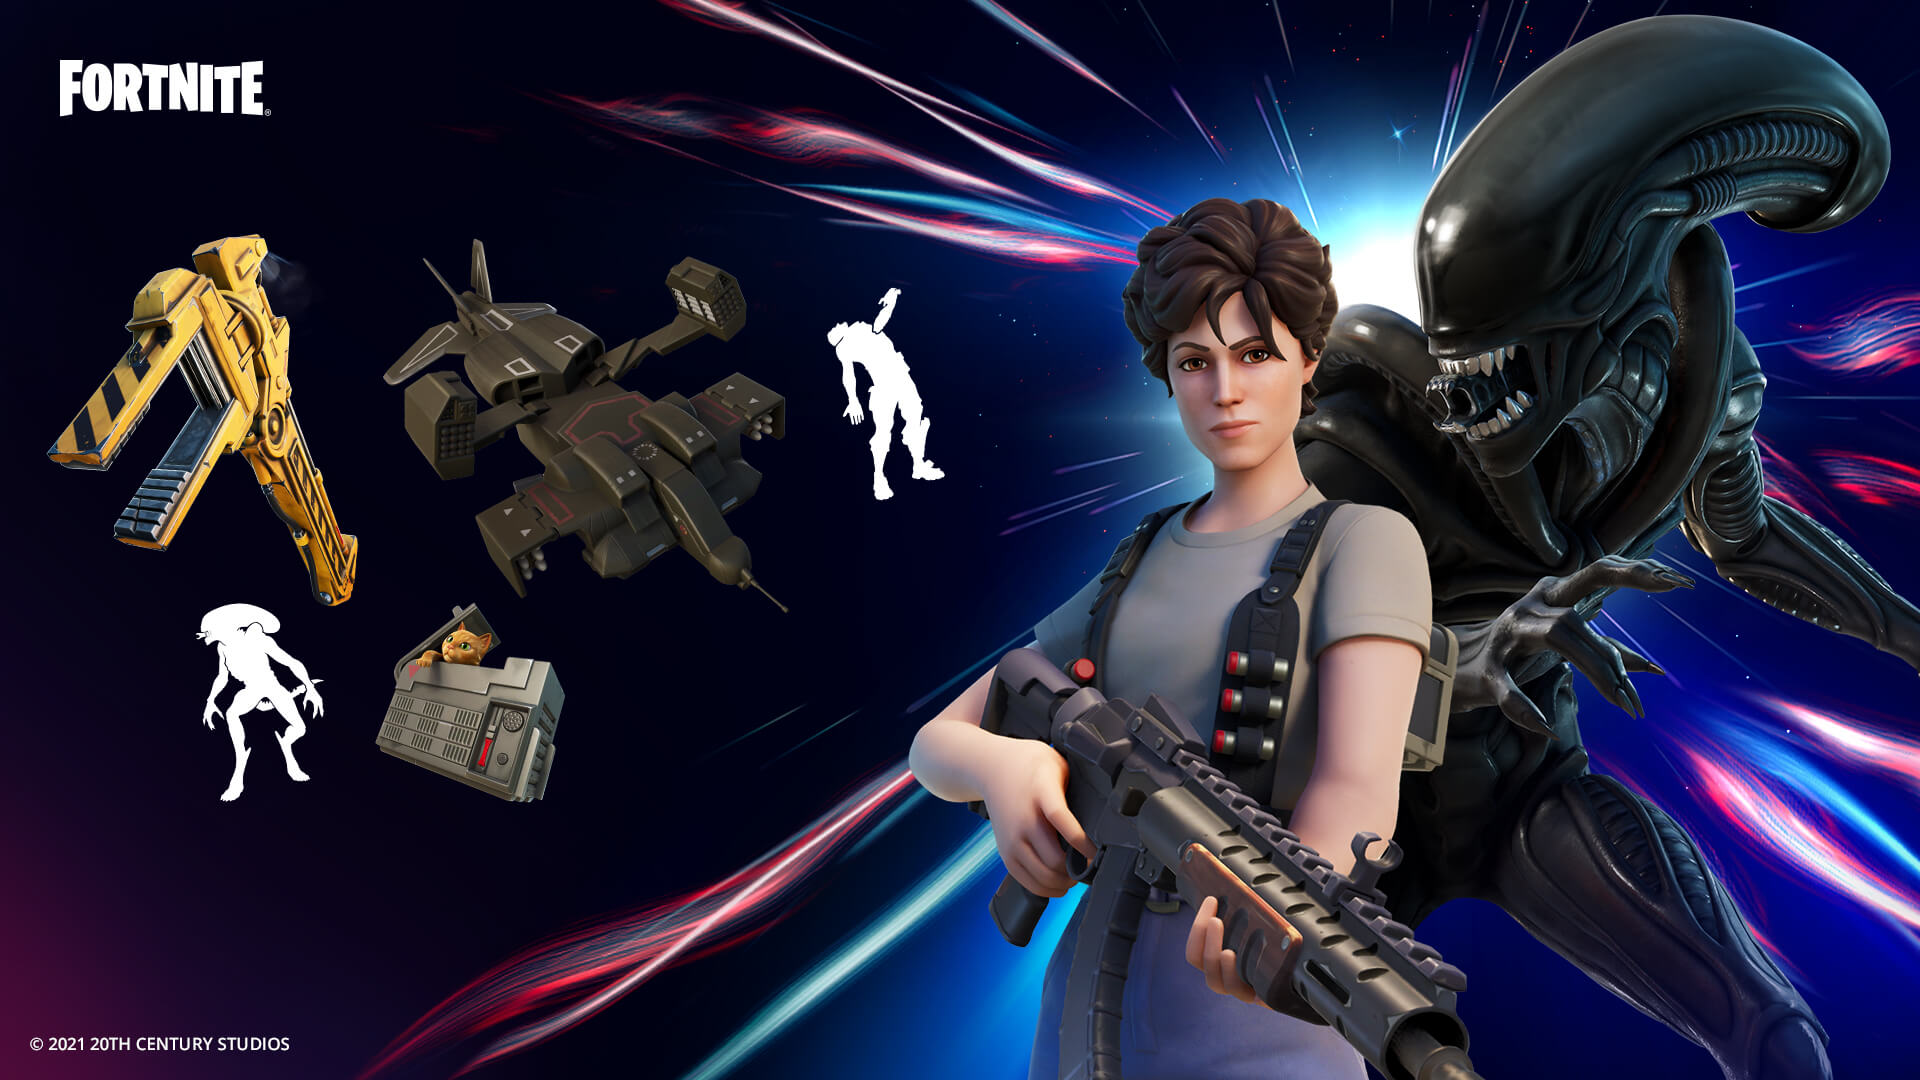 Fortnite Ellen Ripley And Xenomorph